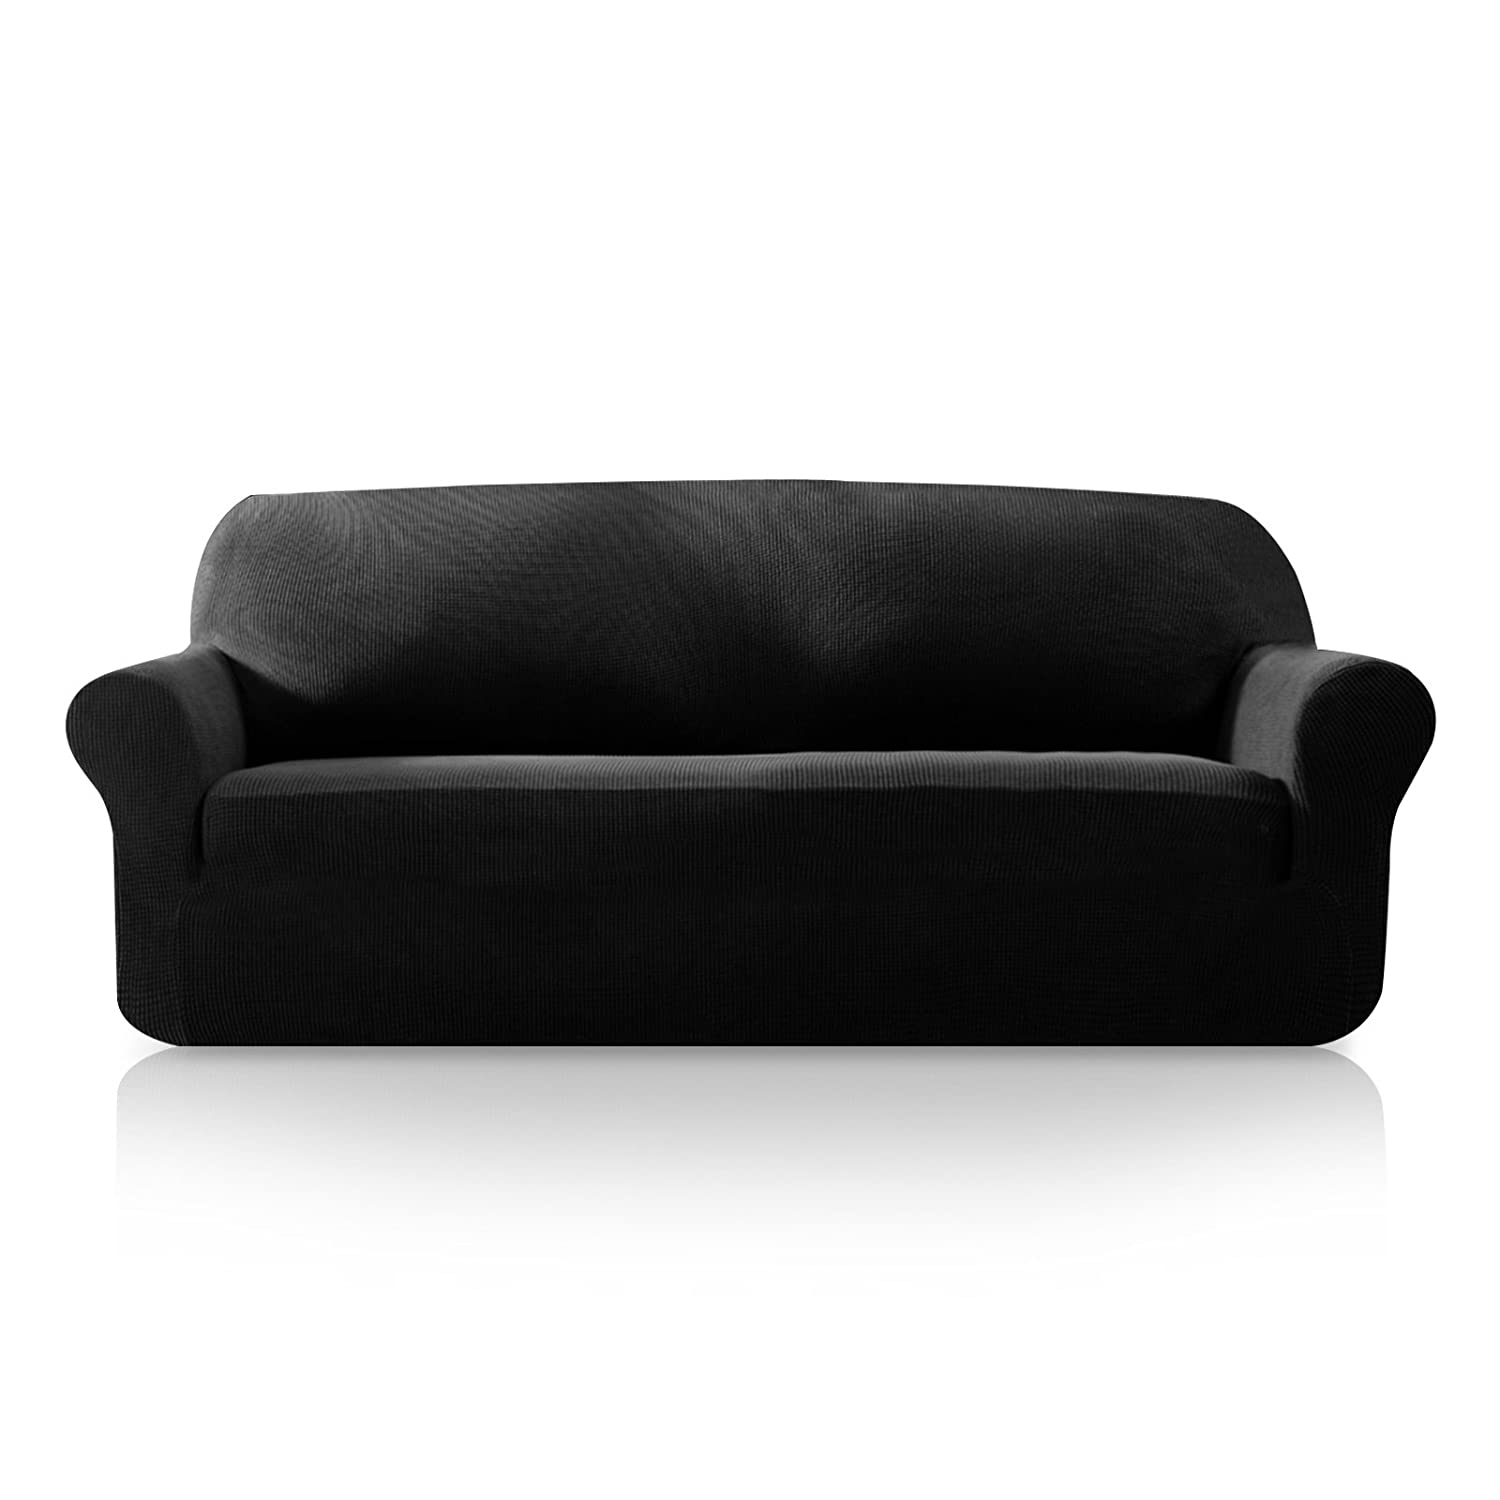 Subrtex 1-Piece Plaid Jacquard Stretch Couch Slipcovers, Chair, Black Shaoxing Yuanyi Household Co. Ltd.